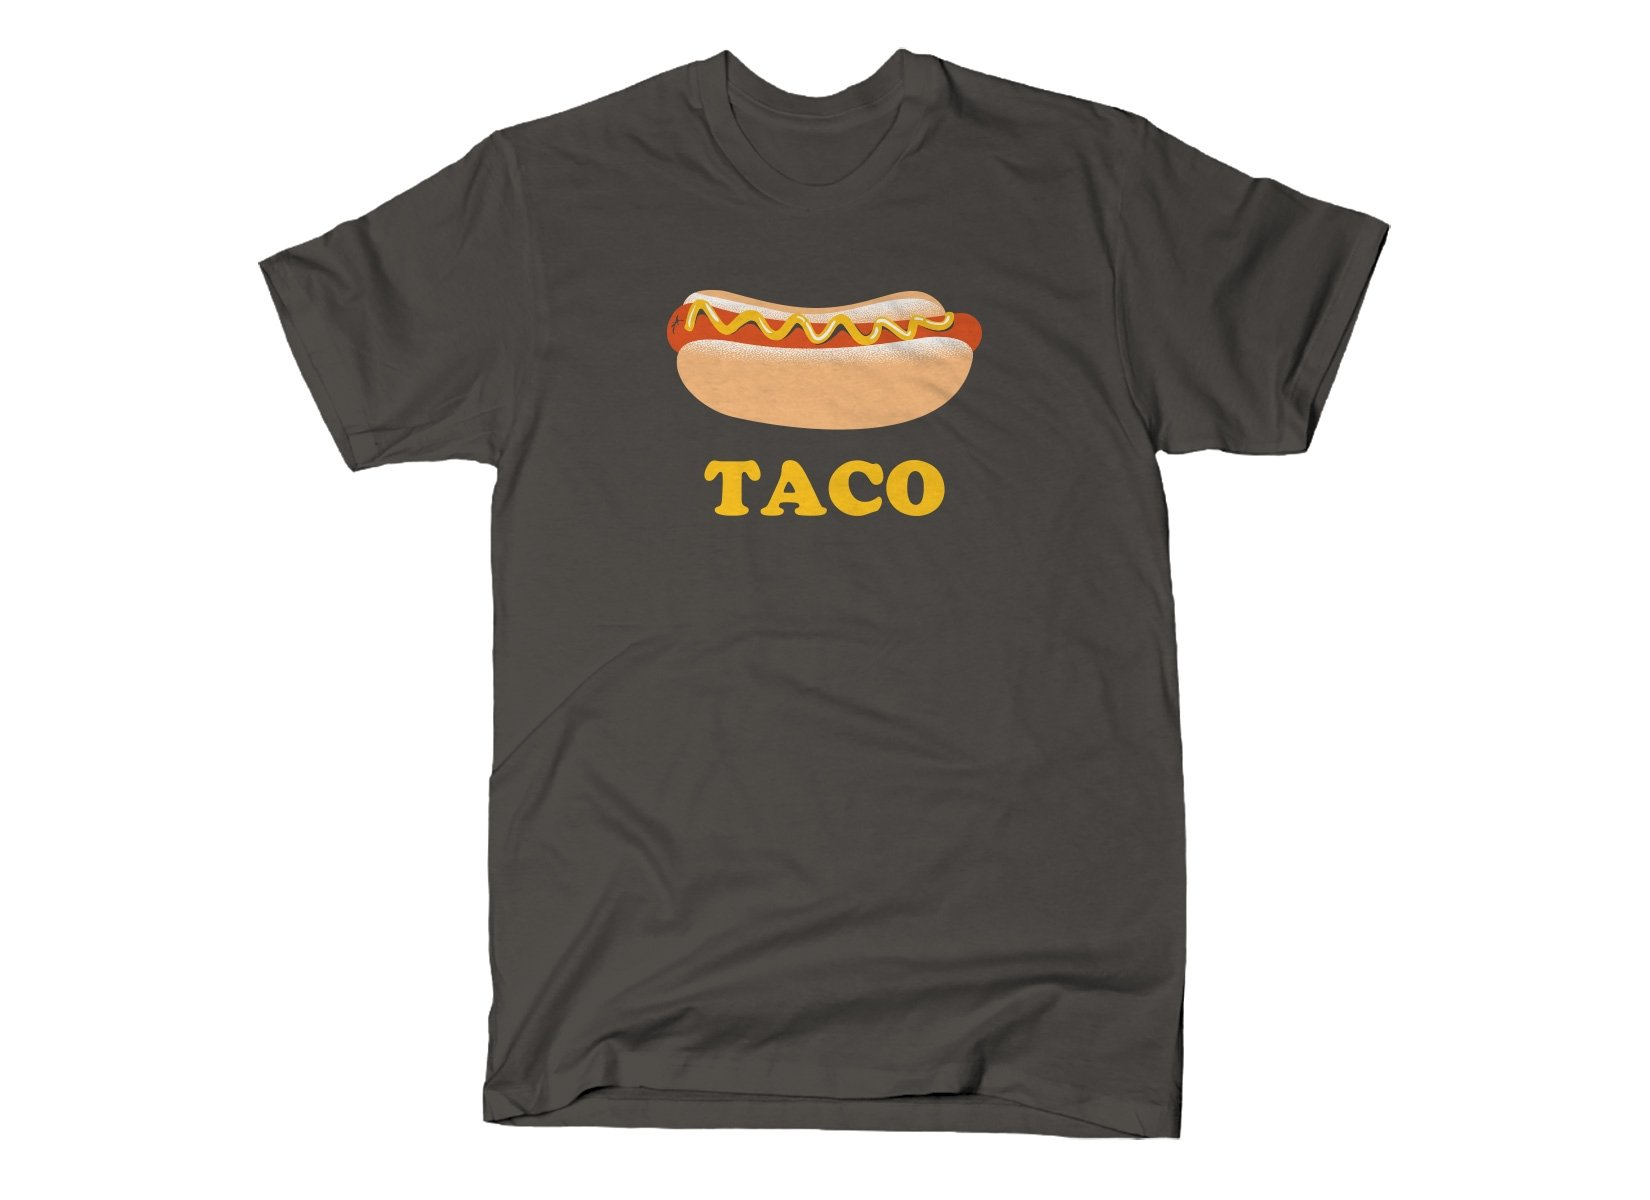 Hotdog Taco on Mens T-Shirt